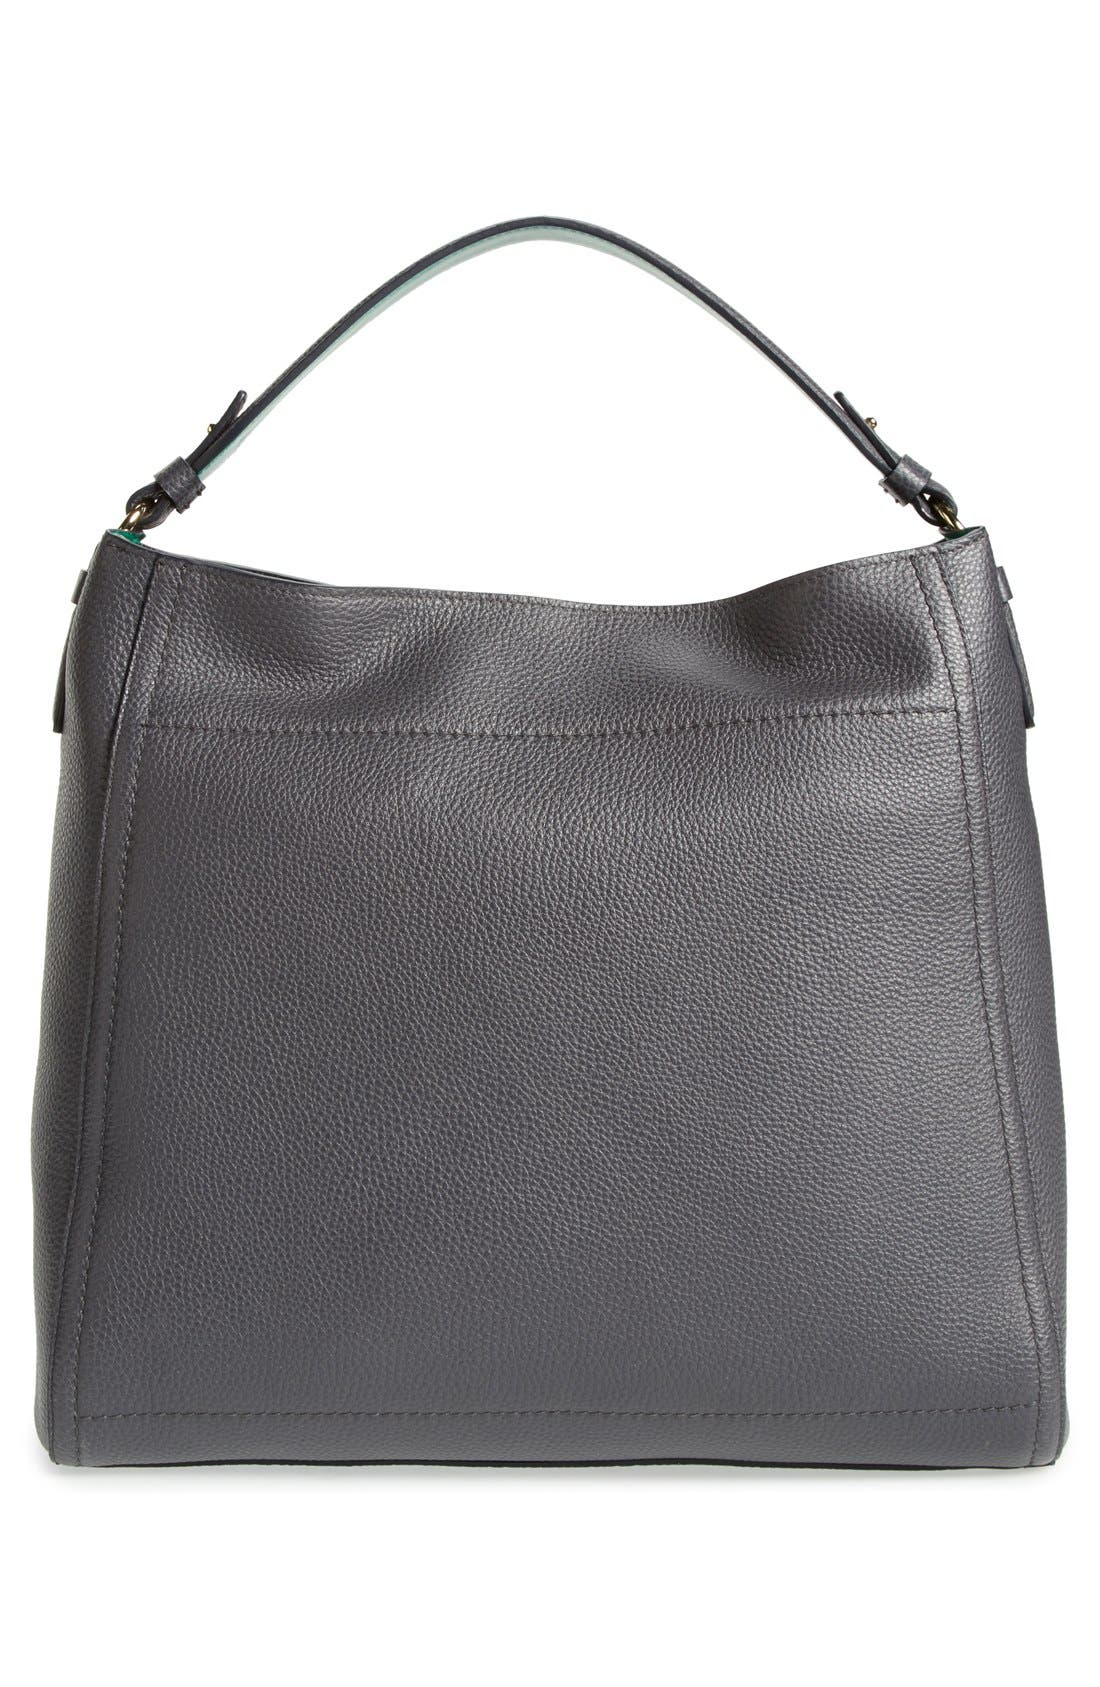 SALVATORE FERRAGAMO, 'Ally' Hobo, Alternate thumbnail 5, color, 020